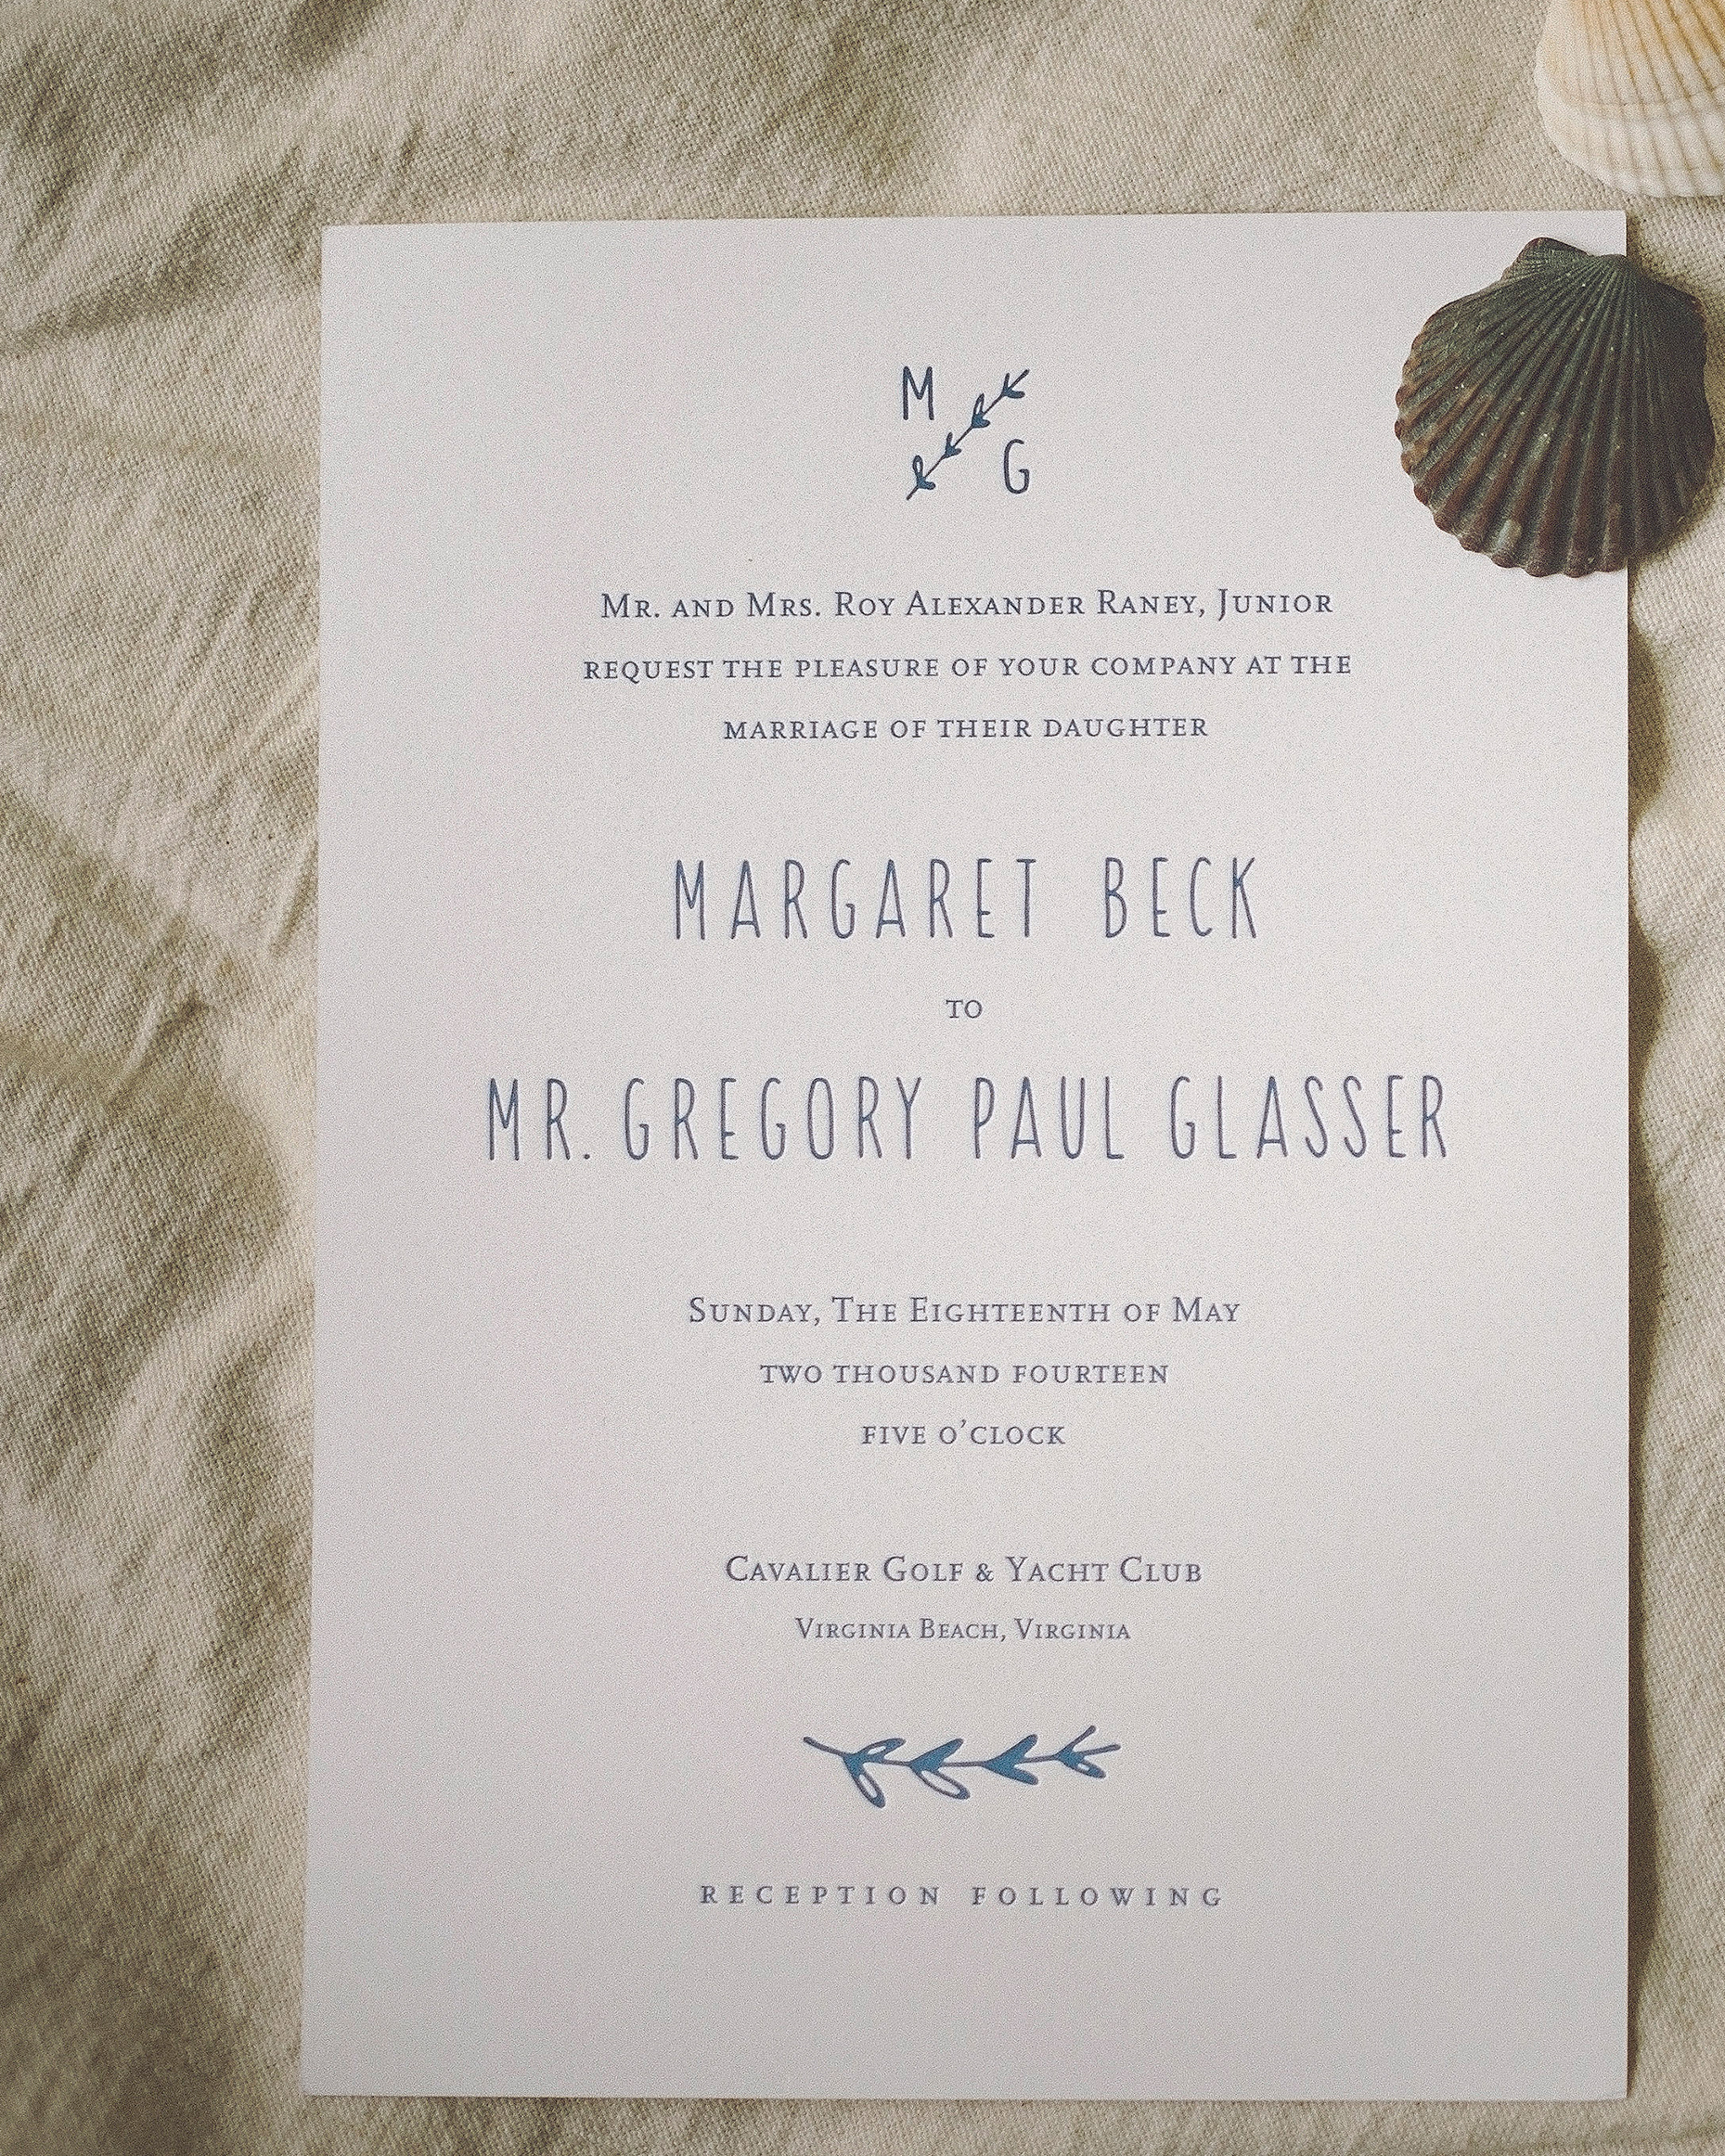 molly-greg-wedding-invite-00000-s111481-0814.jpg